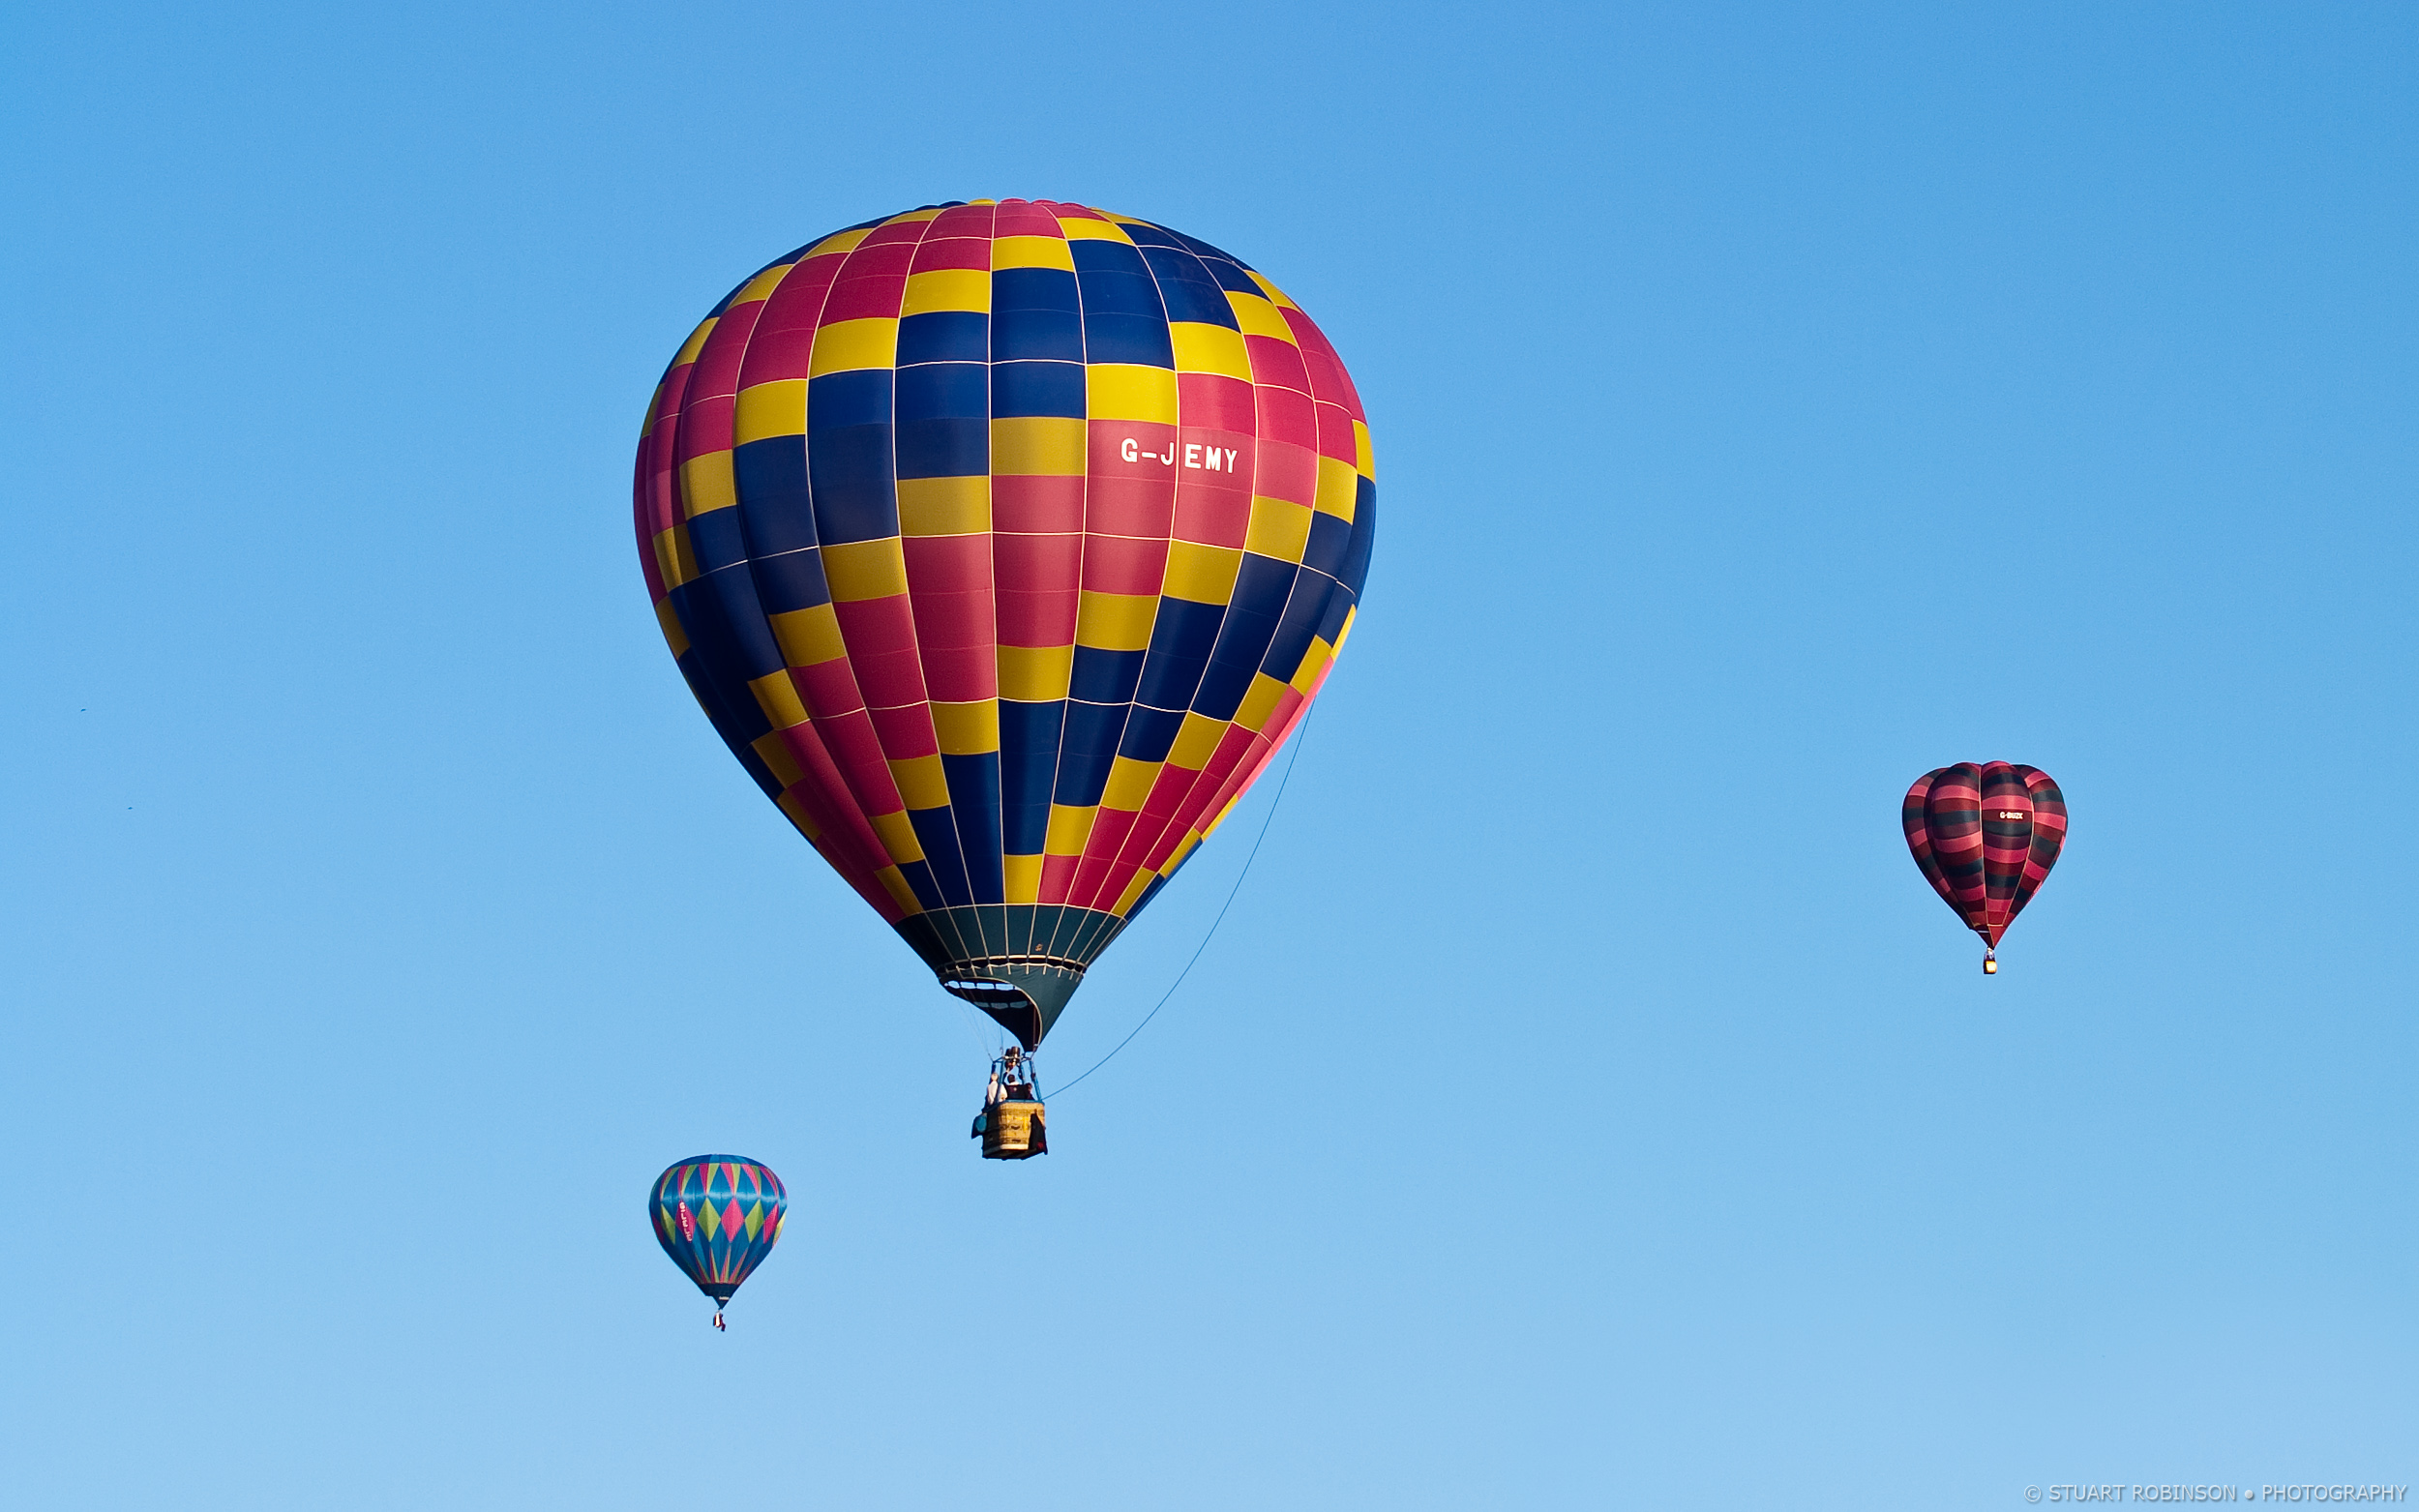 Llangollen Balloon Festival  - Canon EOS 5D Mark II, EF 100-400mm f/4.5-5.6L IS USM, 1/250 sec at f/6.7, ISO 100